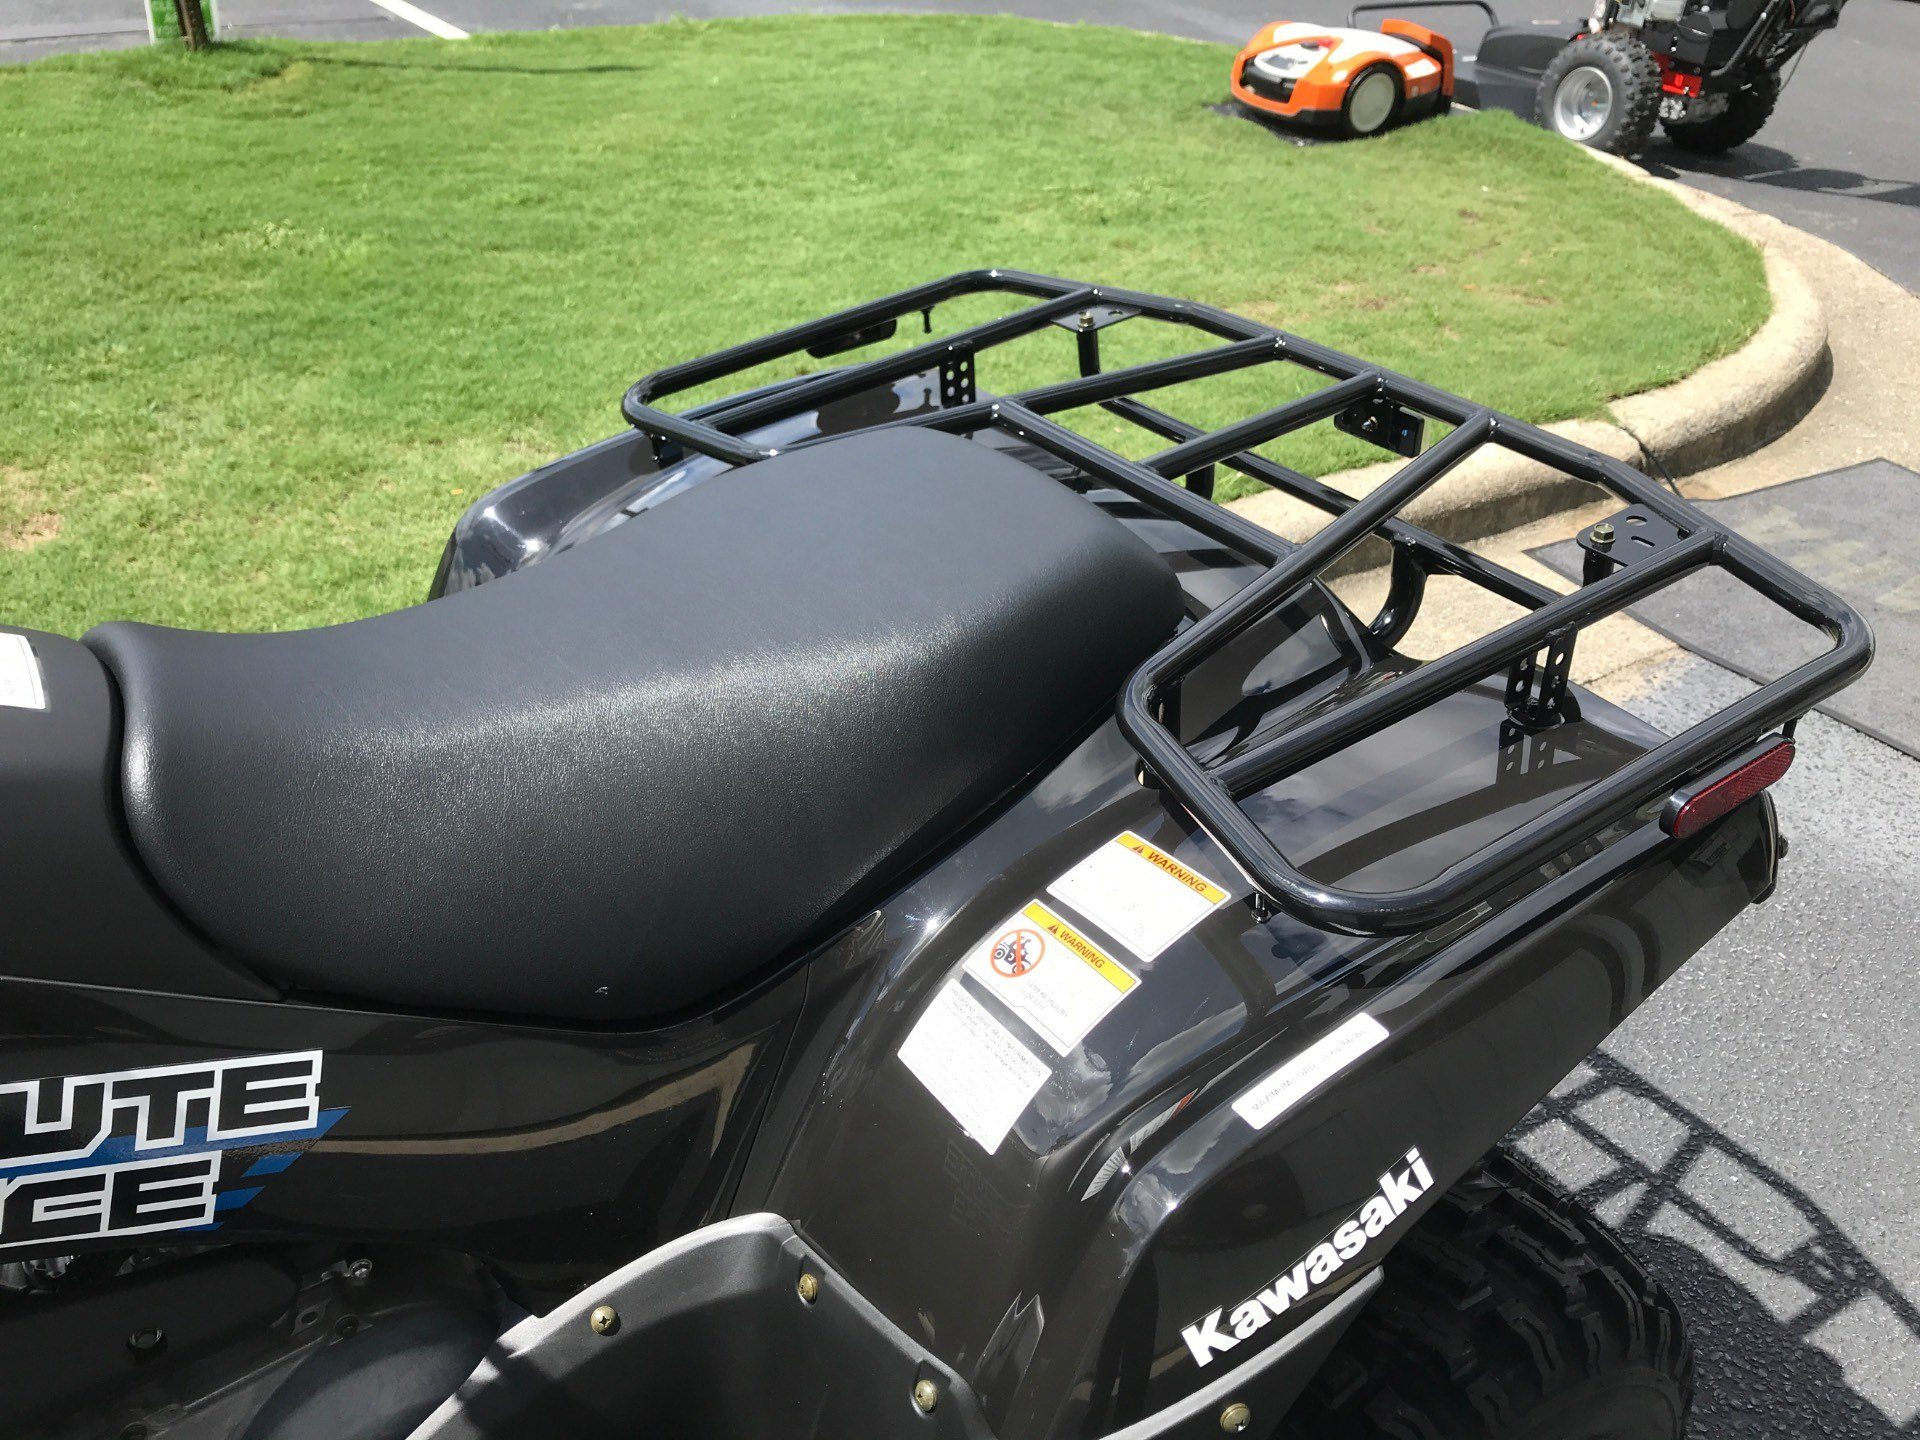 2021 Kawasaki Brute Force 300 in Greenville, North Carolina - Photo 14